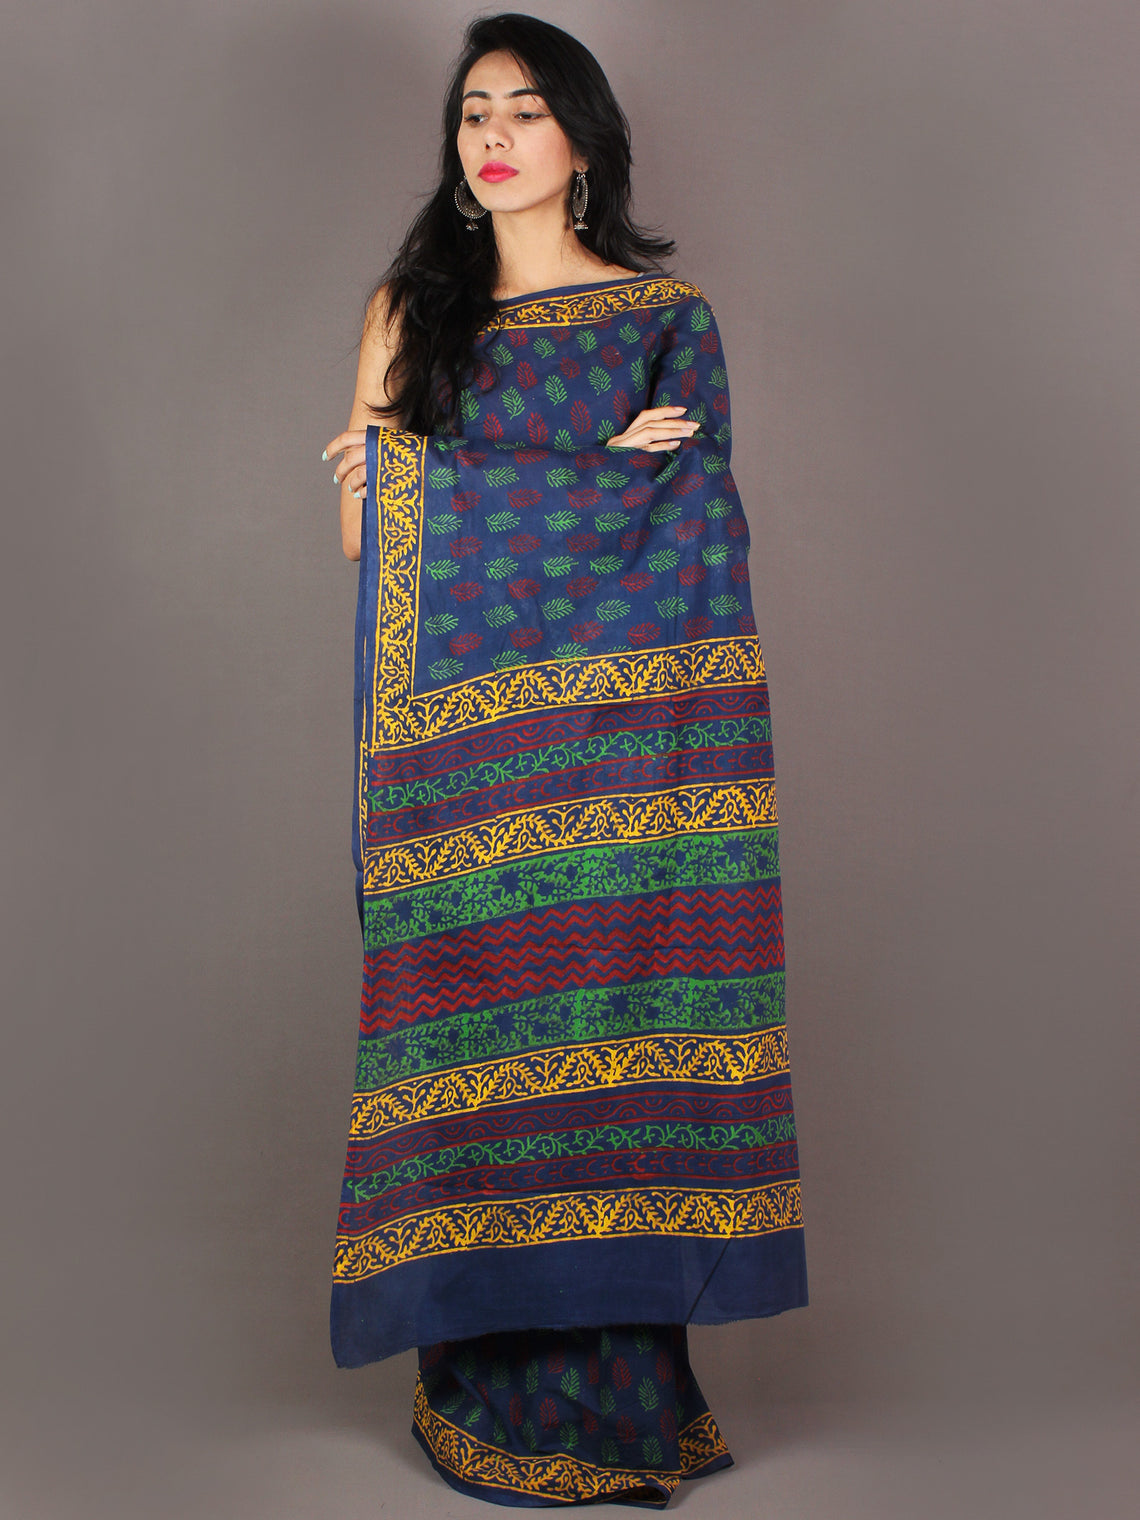 Indigo Maroon Green Yellow Bagru Dabu Hand Block Printed in Cotton Mul Saree - S03170983